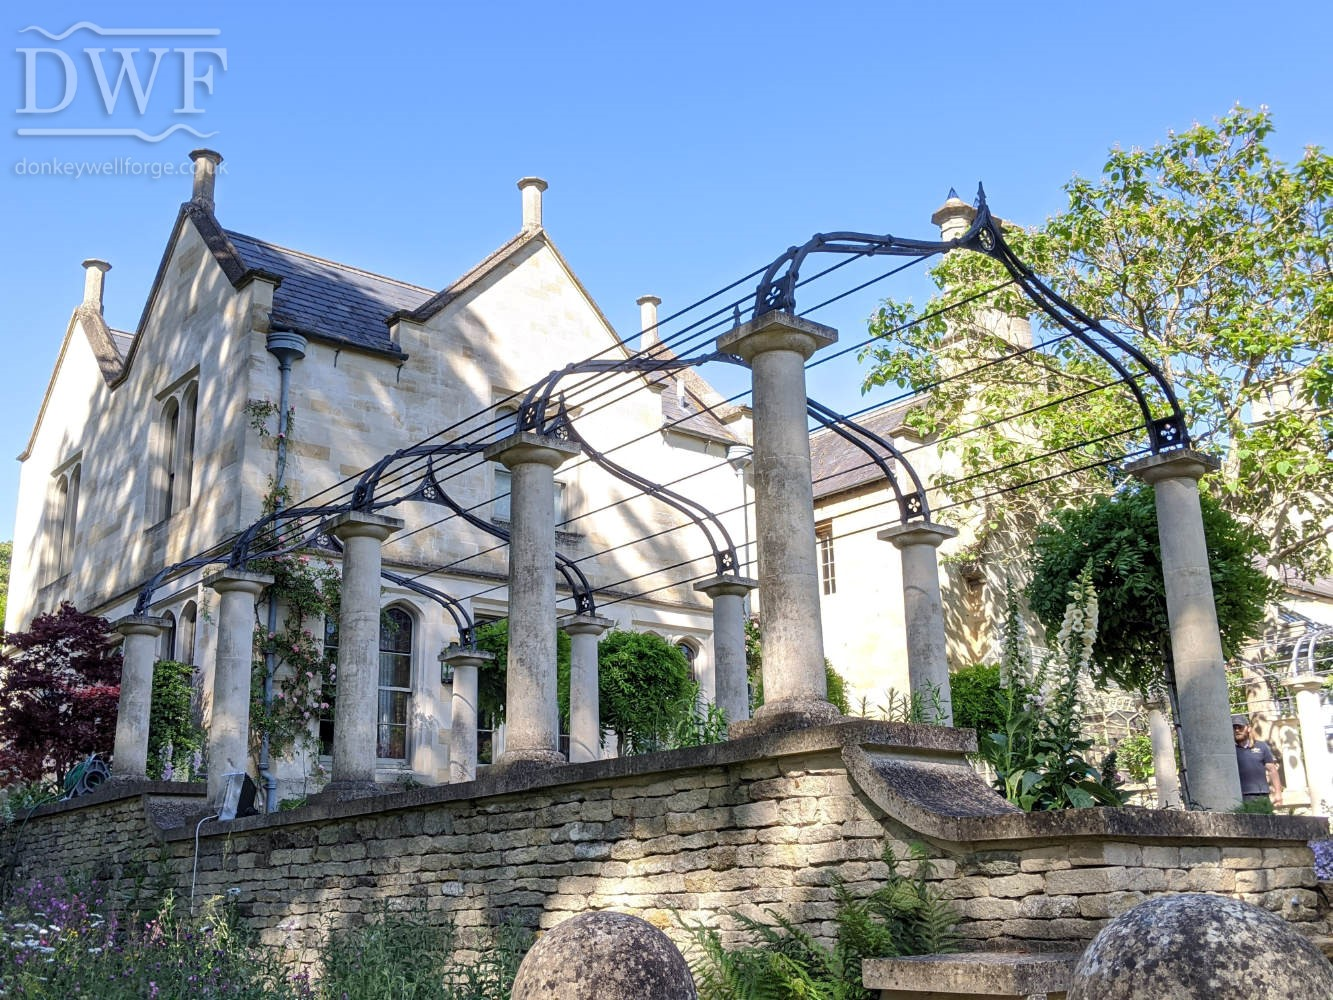 traditional-ironwork-gothic-garden-arches-riveted-forged